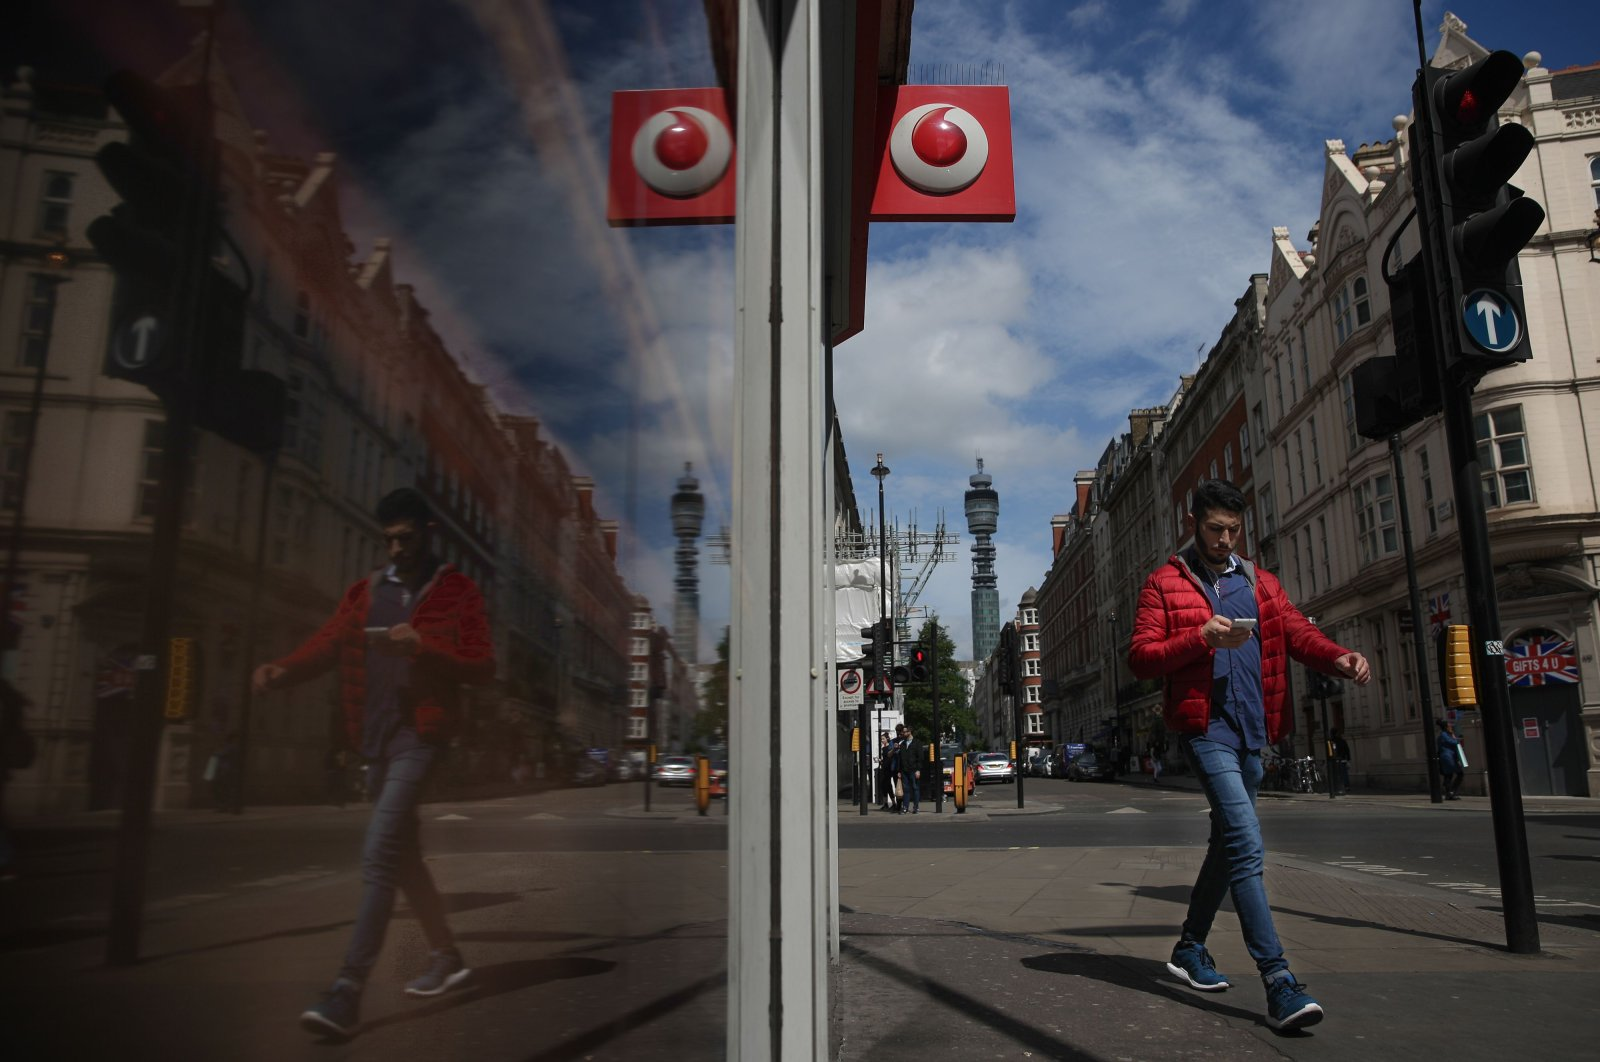 A Vodafone logo is seen at a store in central London in this file photo taken on May 16, 2017. (AFP Photo)